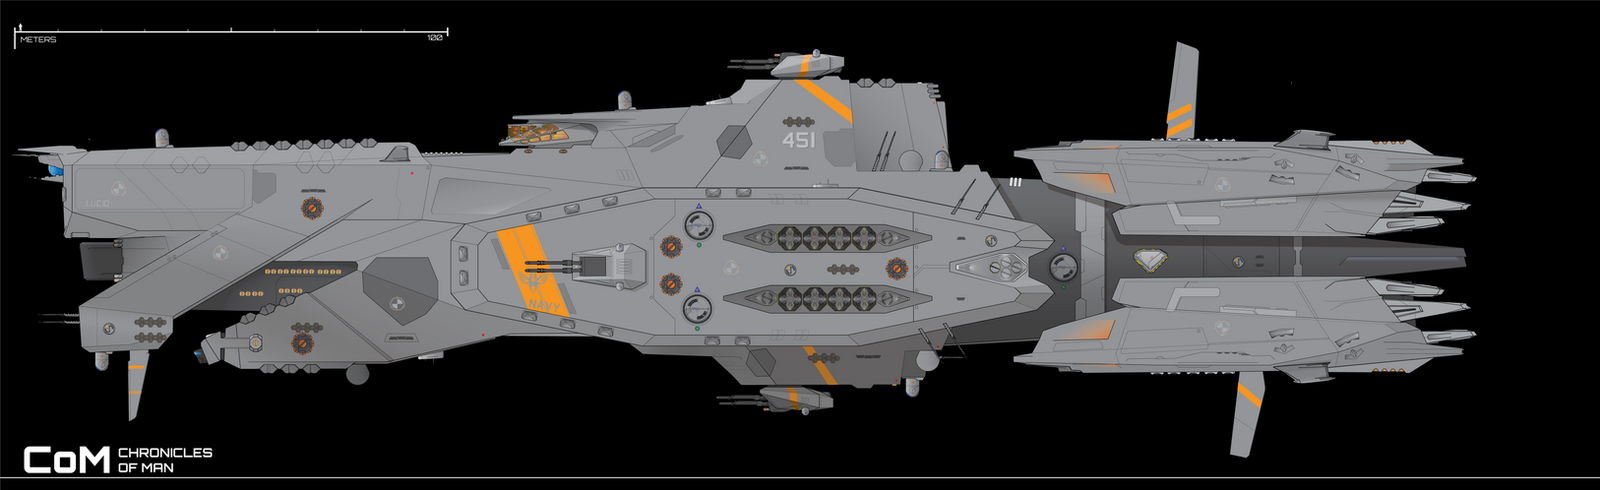 Lucid-class Frigate Redux by Afterskies